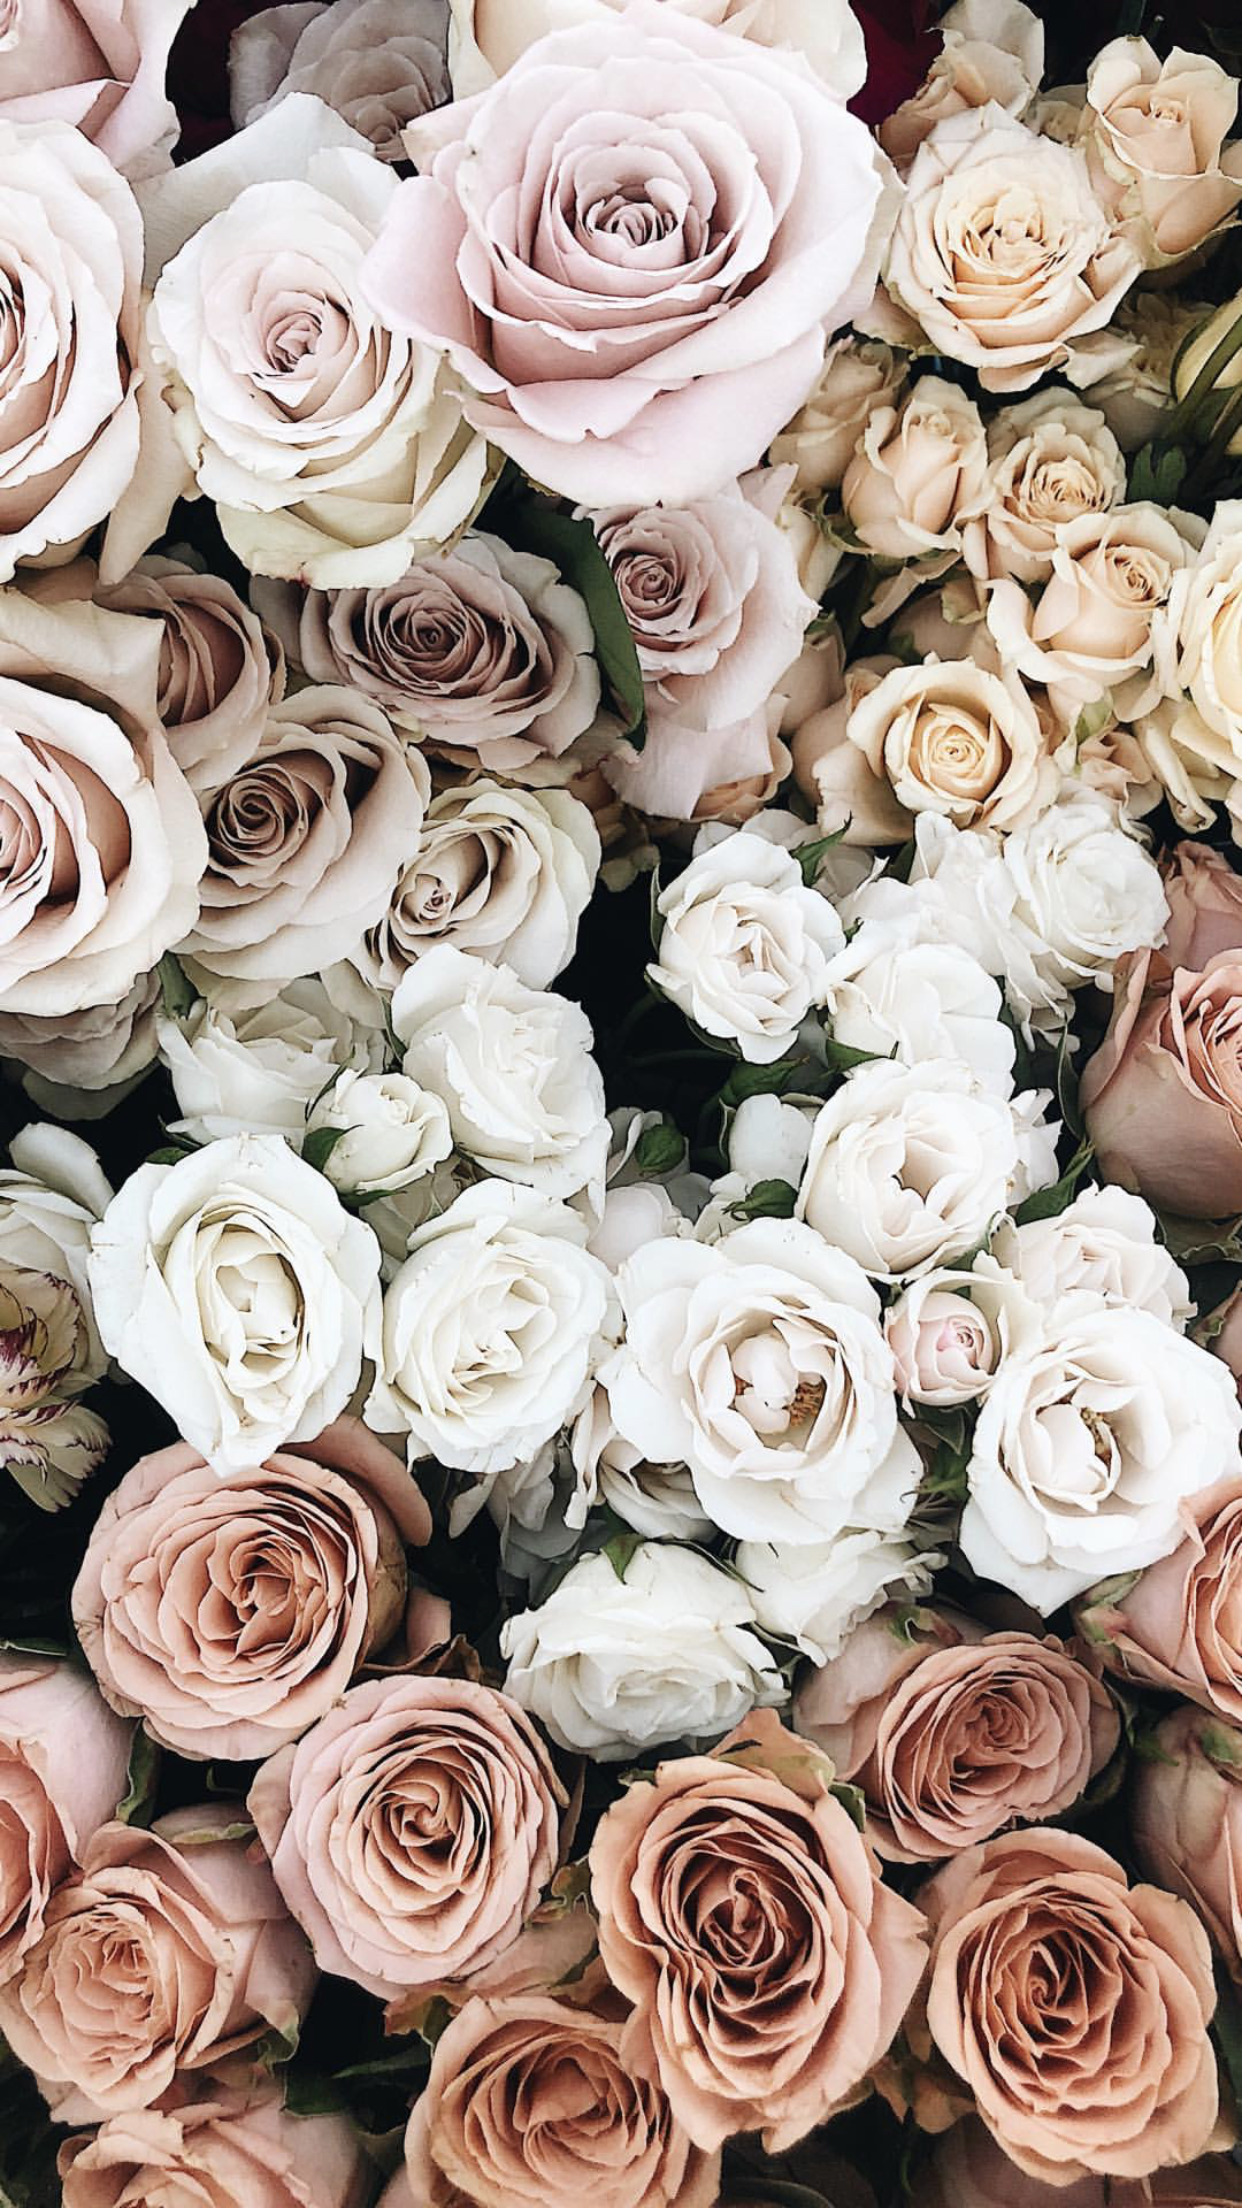 Hd wallpapers and background images Aesthetic White Rose Wallpaper Iphone - Download Free Mock-up